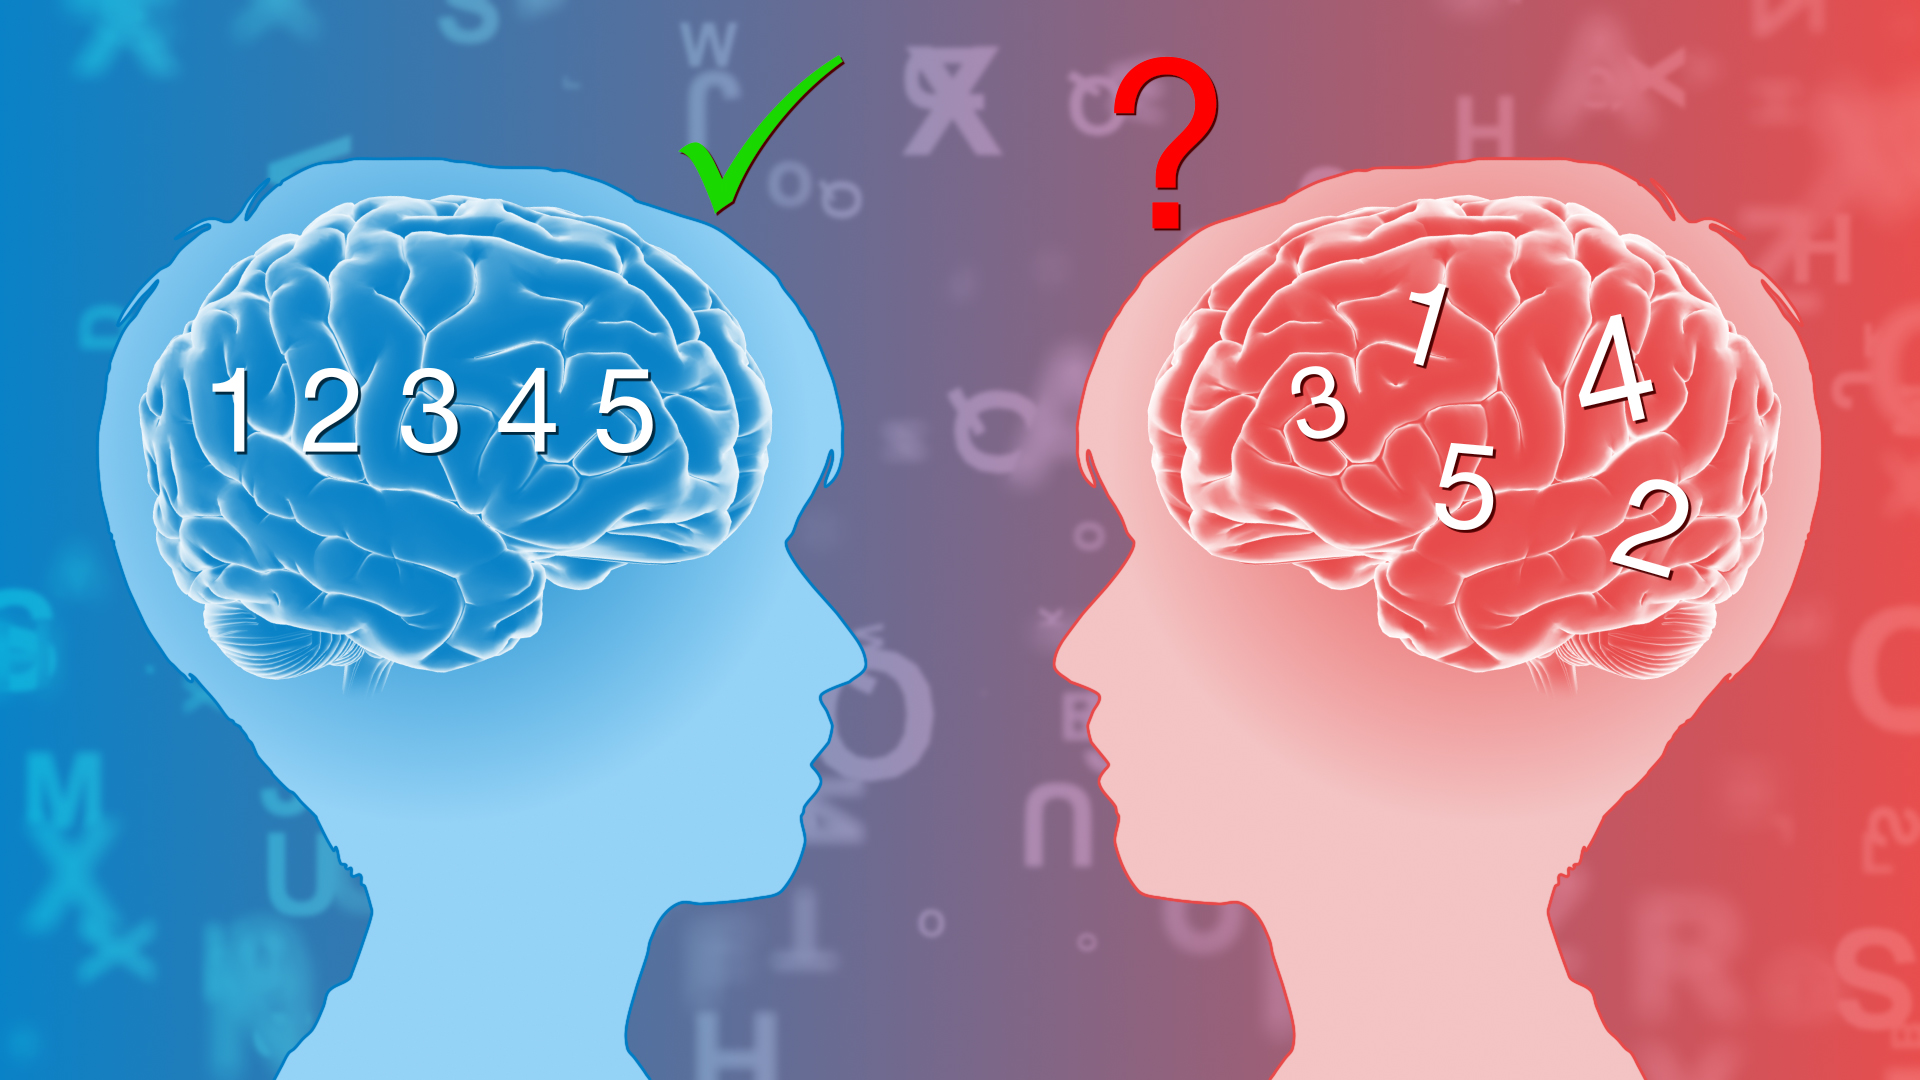 Image of two heads, with ordered numbers on one side and disordered on the other one